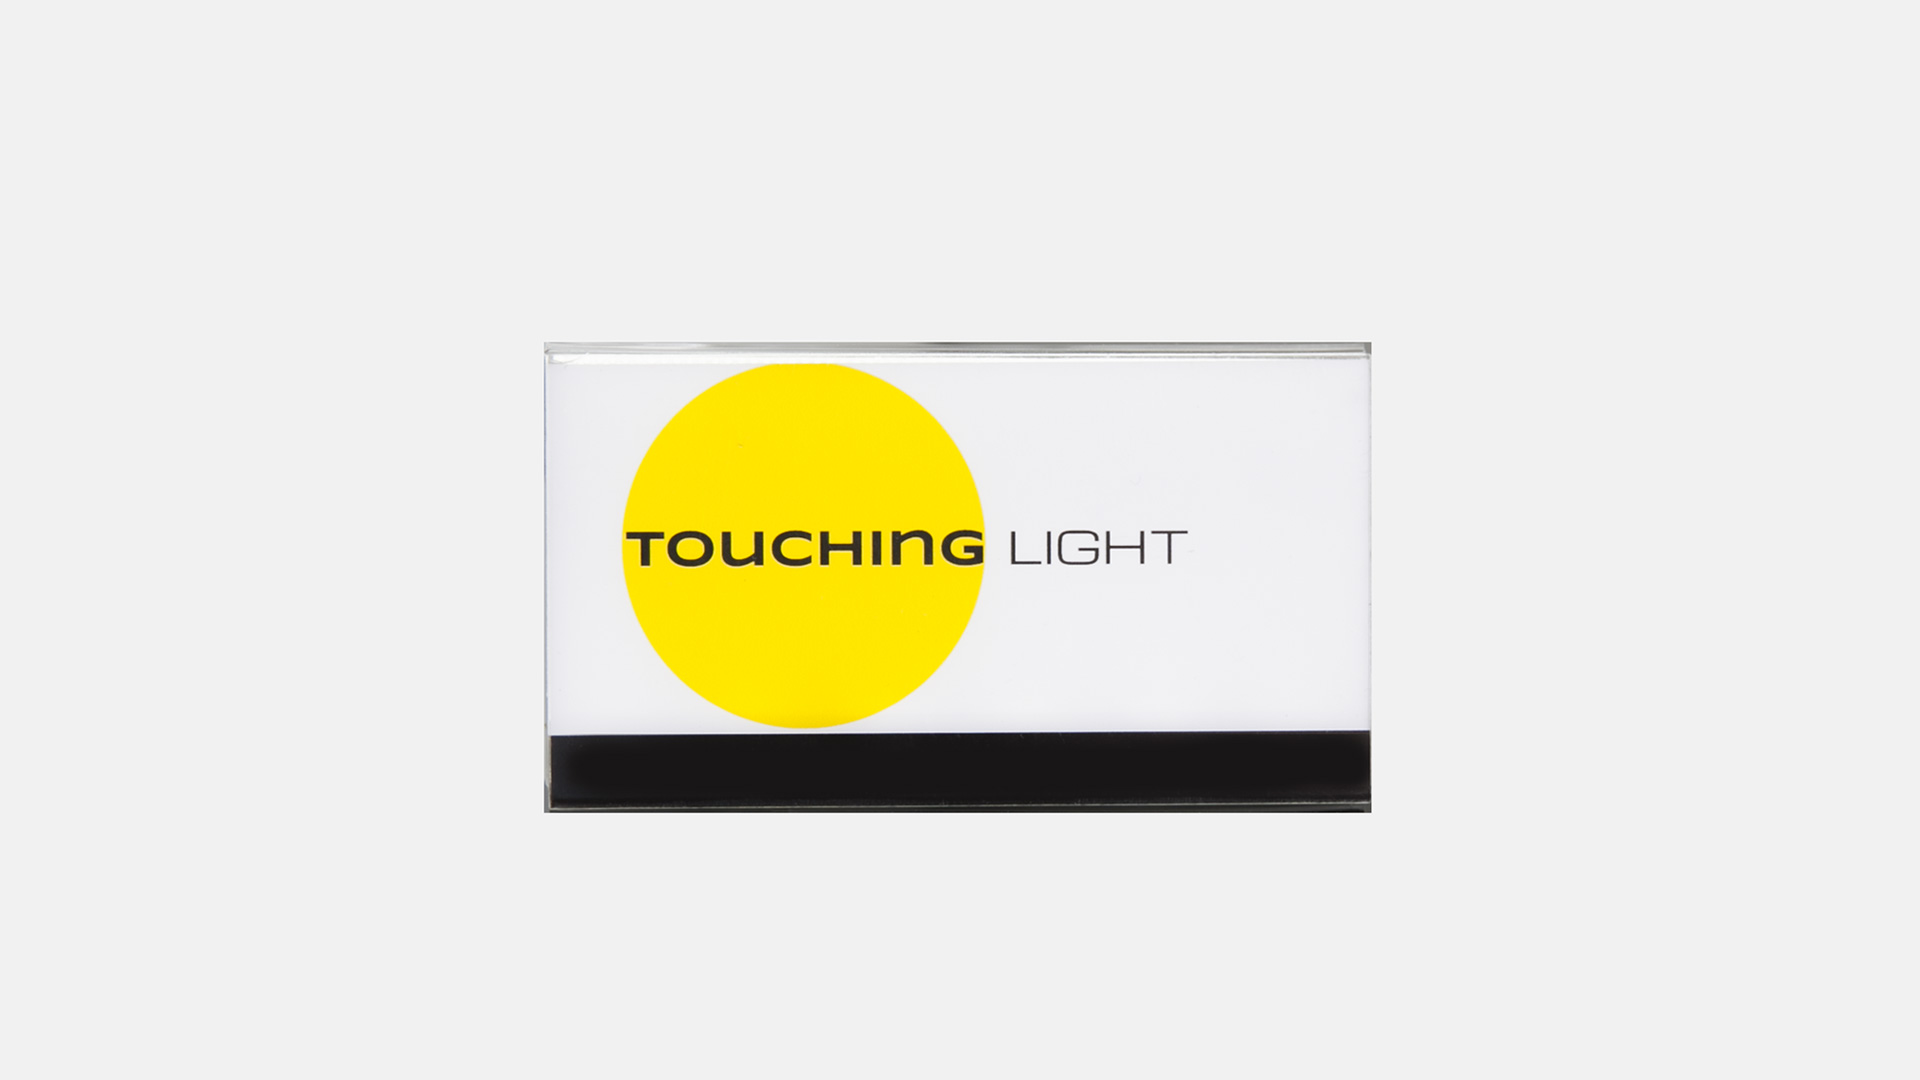 TouchingLight